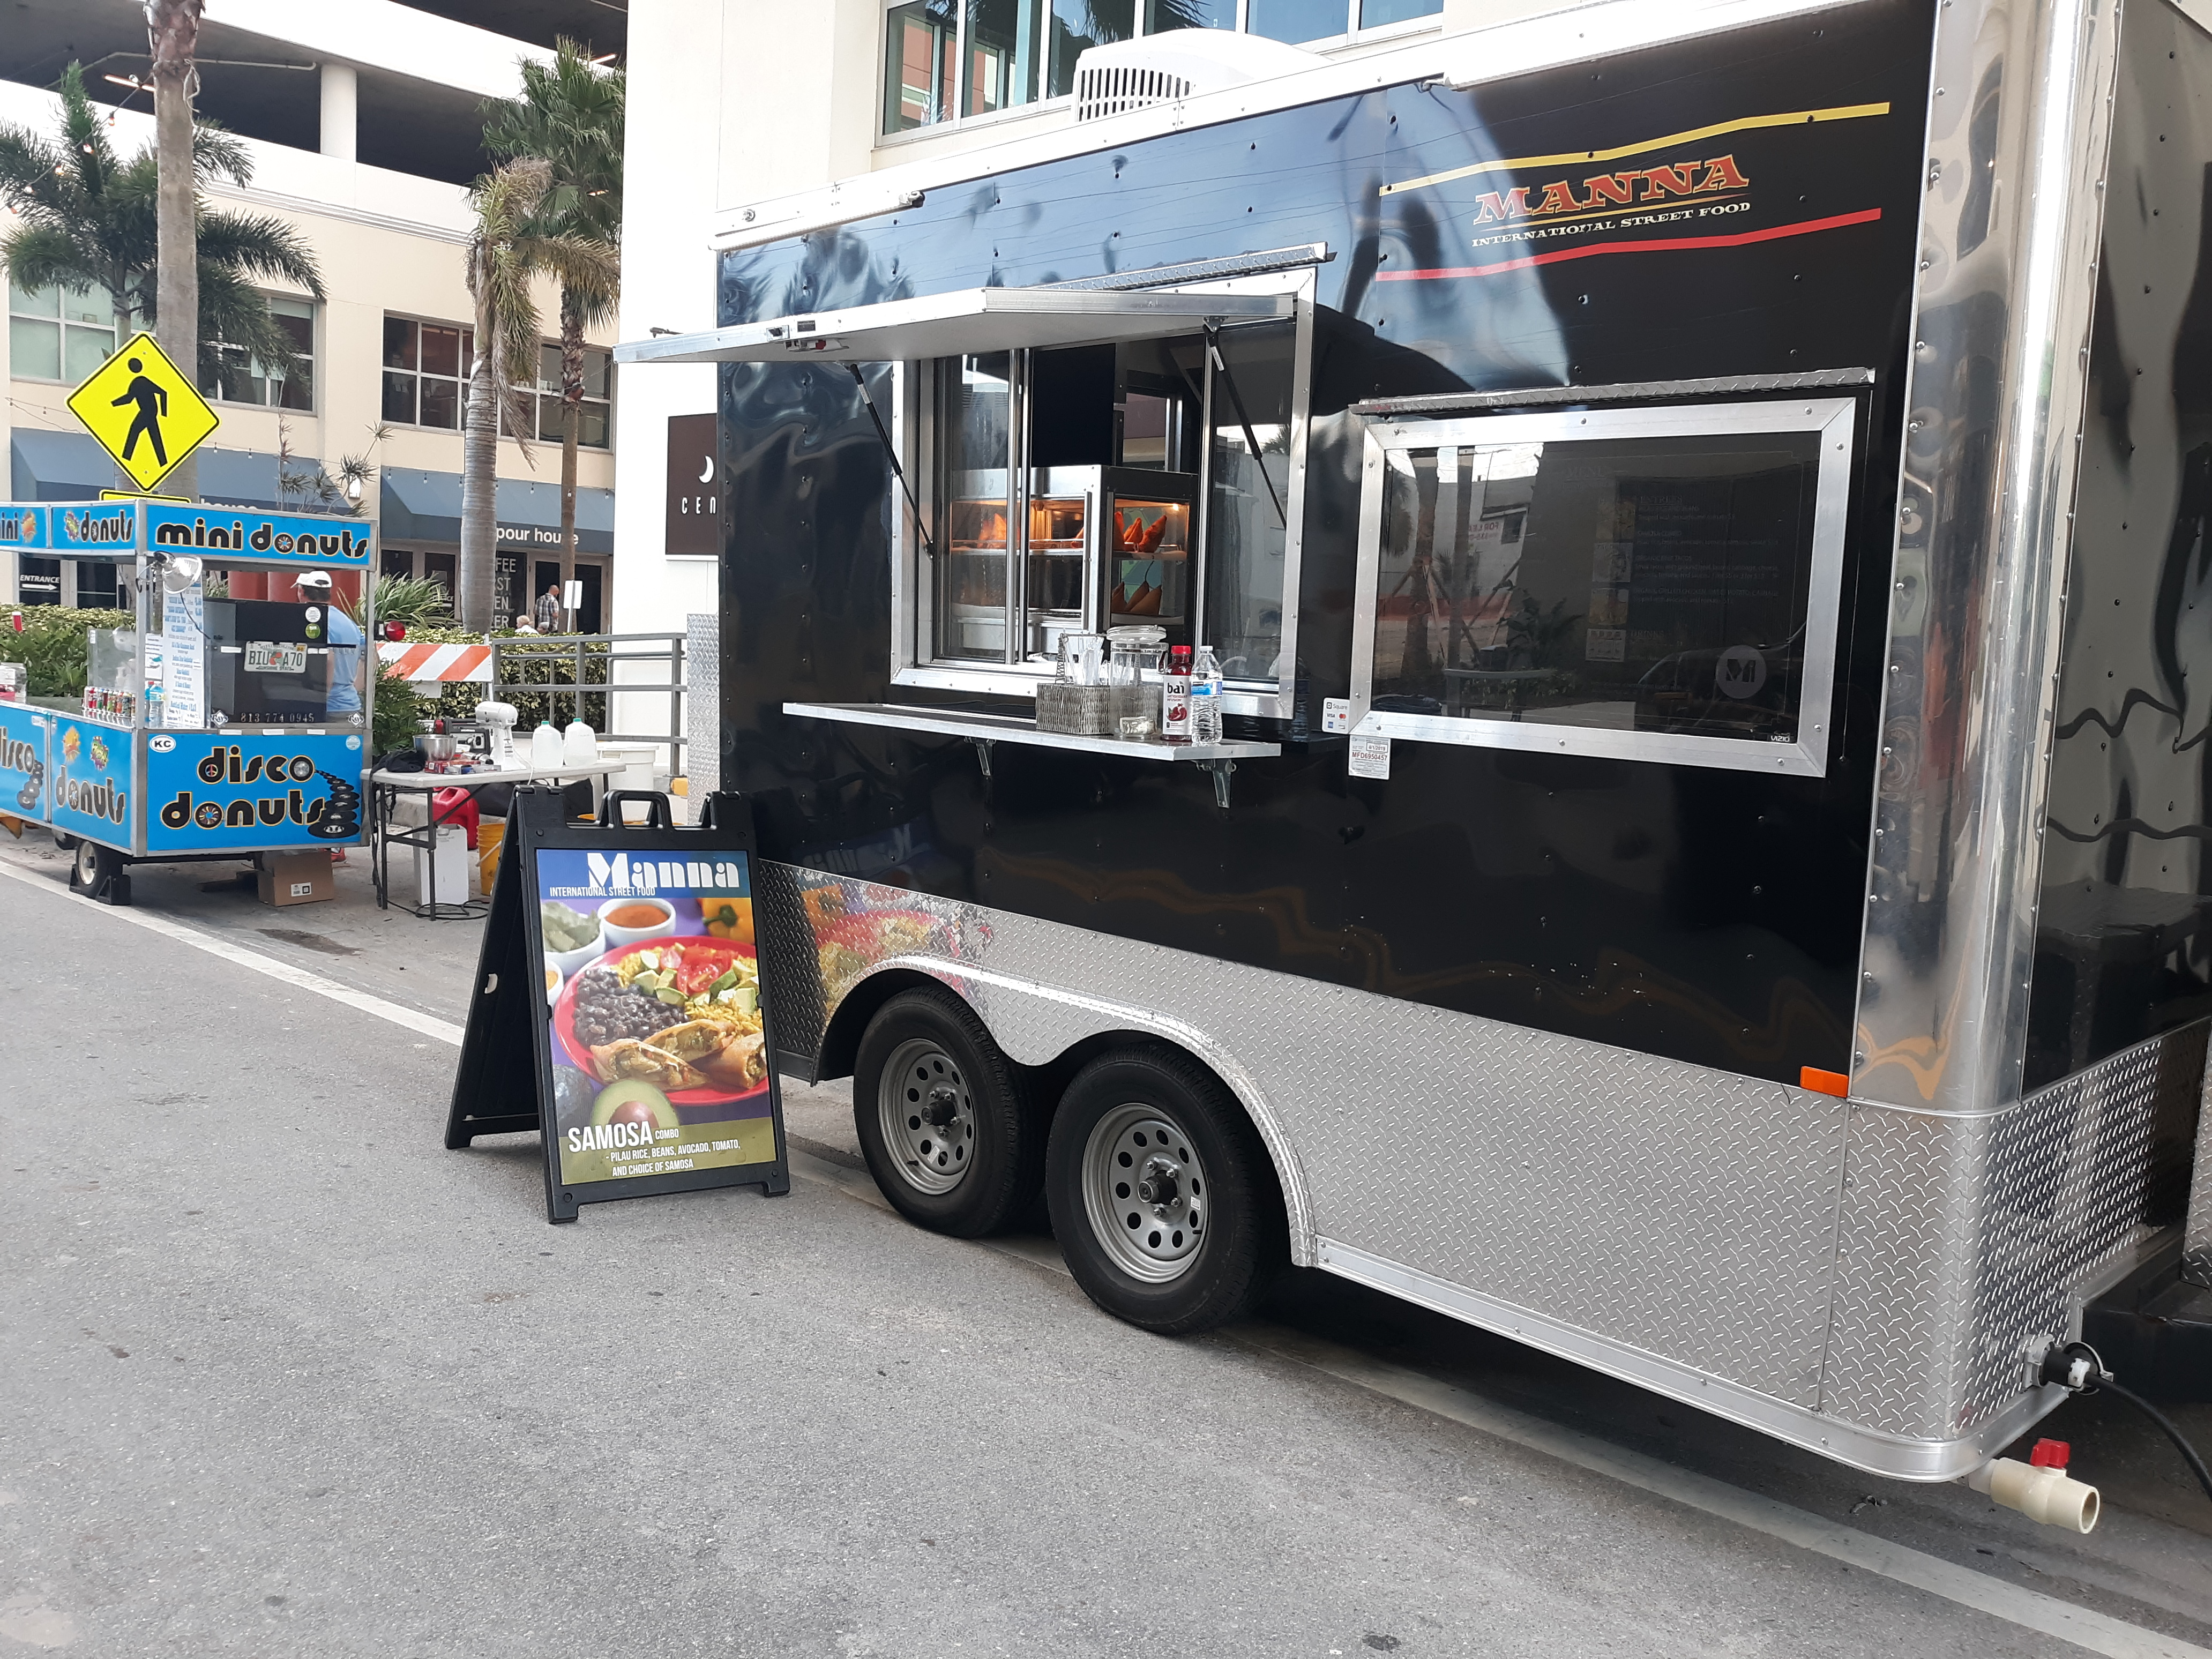 Manna International Street Food Truck